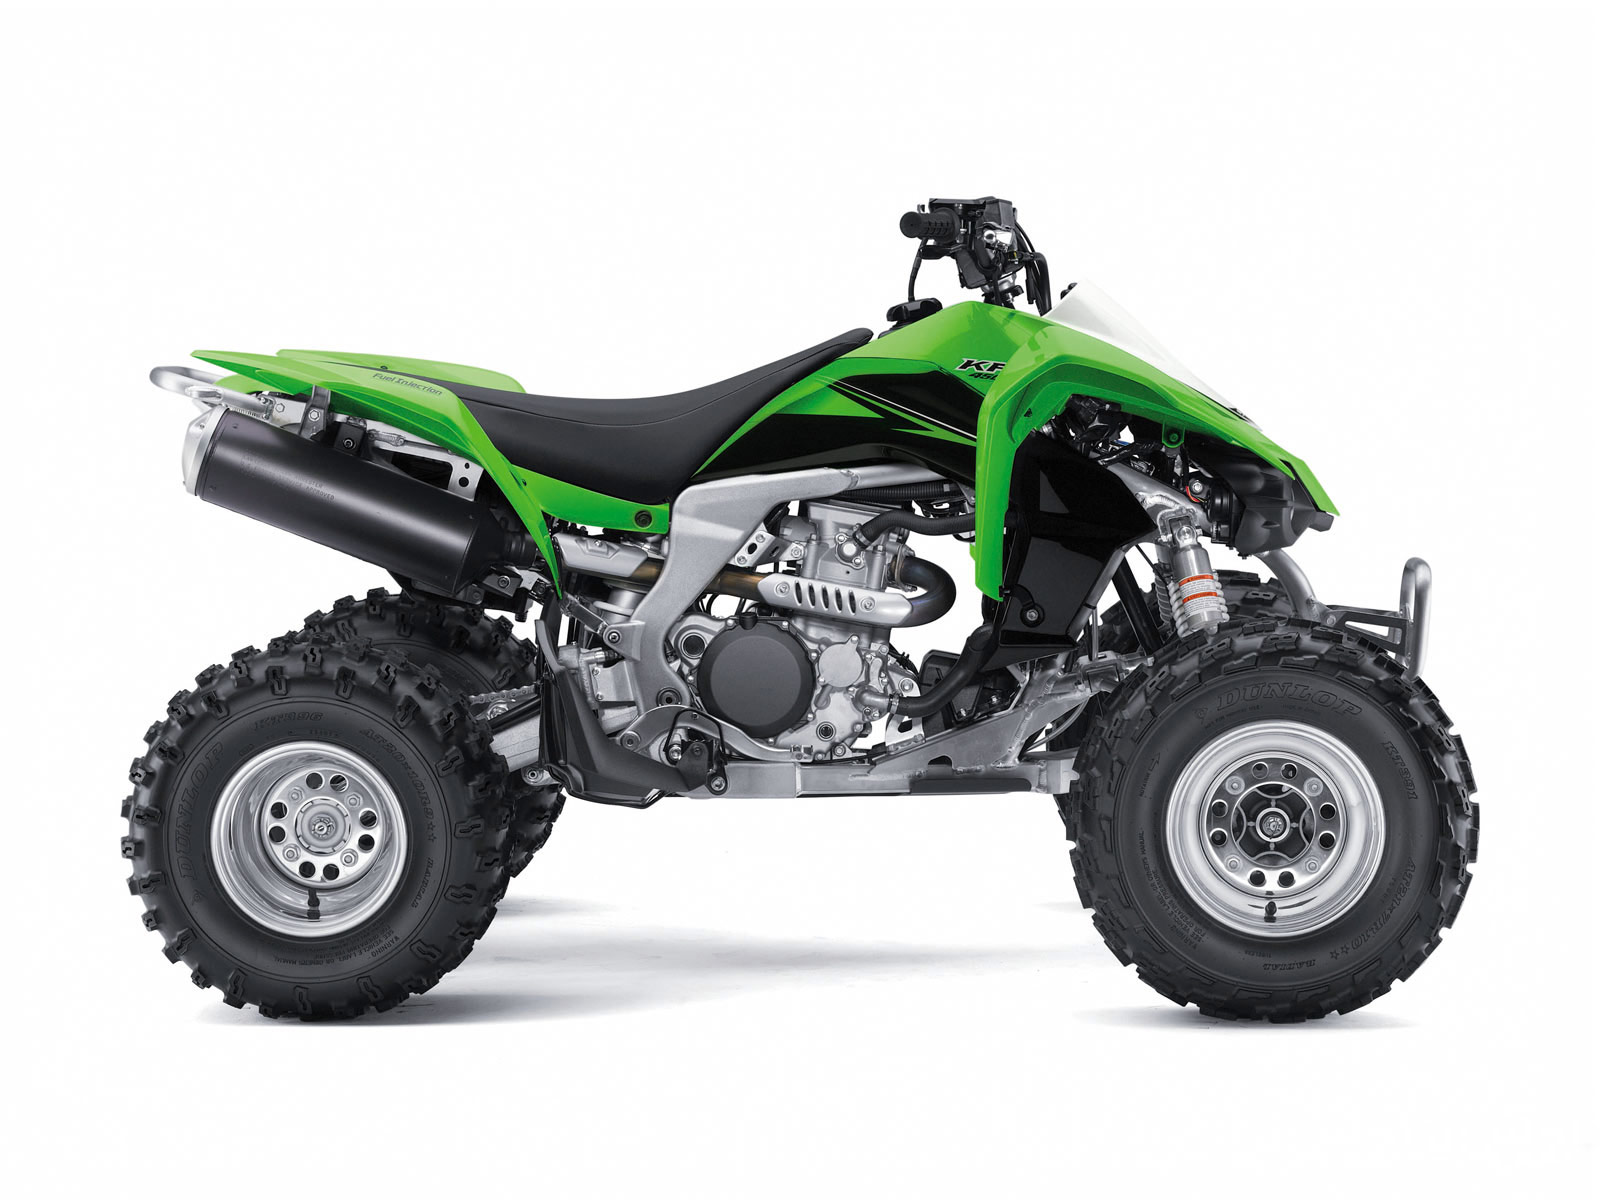 medium resolution of kawasaki accident lawyers 2010 kfx 450r pictures specs